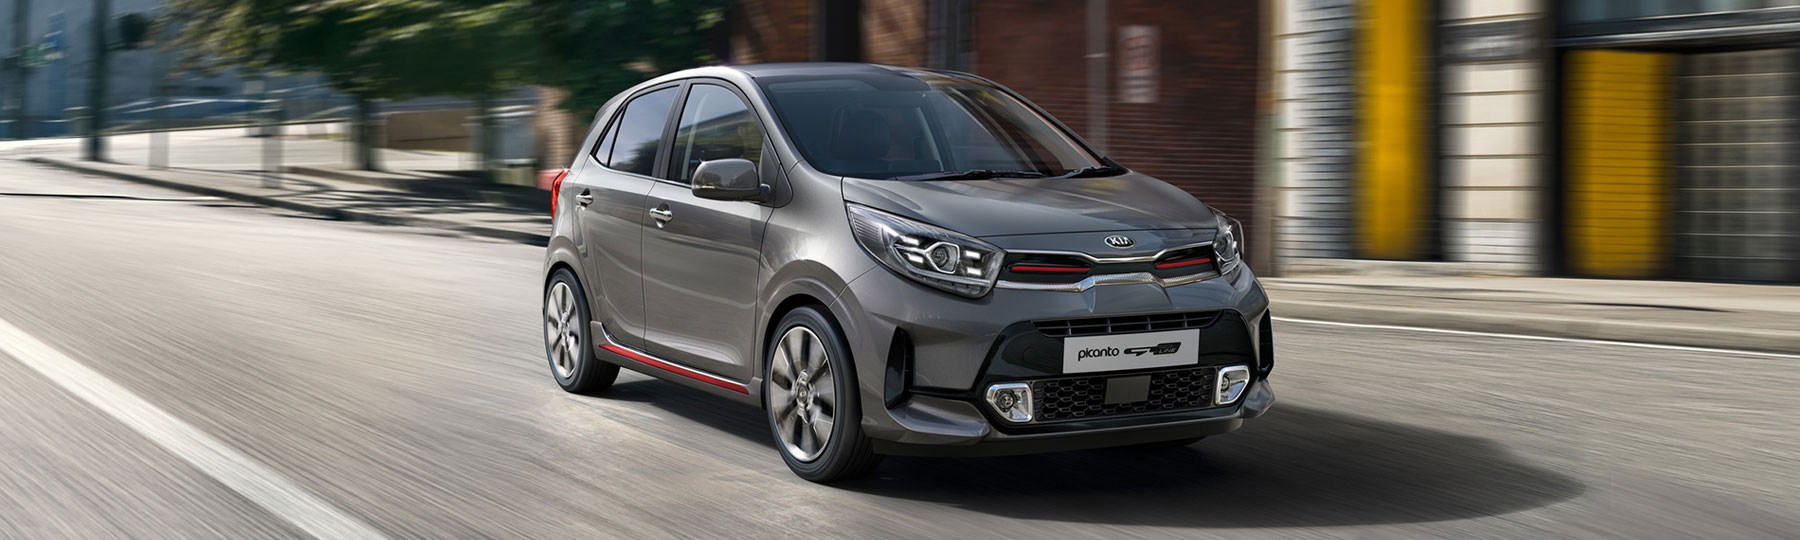 Kia Picanto Pcp Finance Offer With Finance Deposit